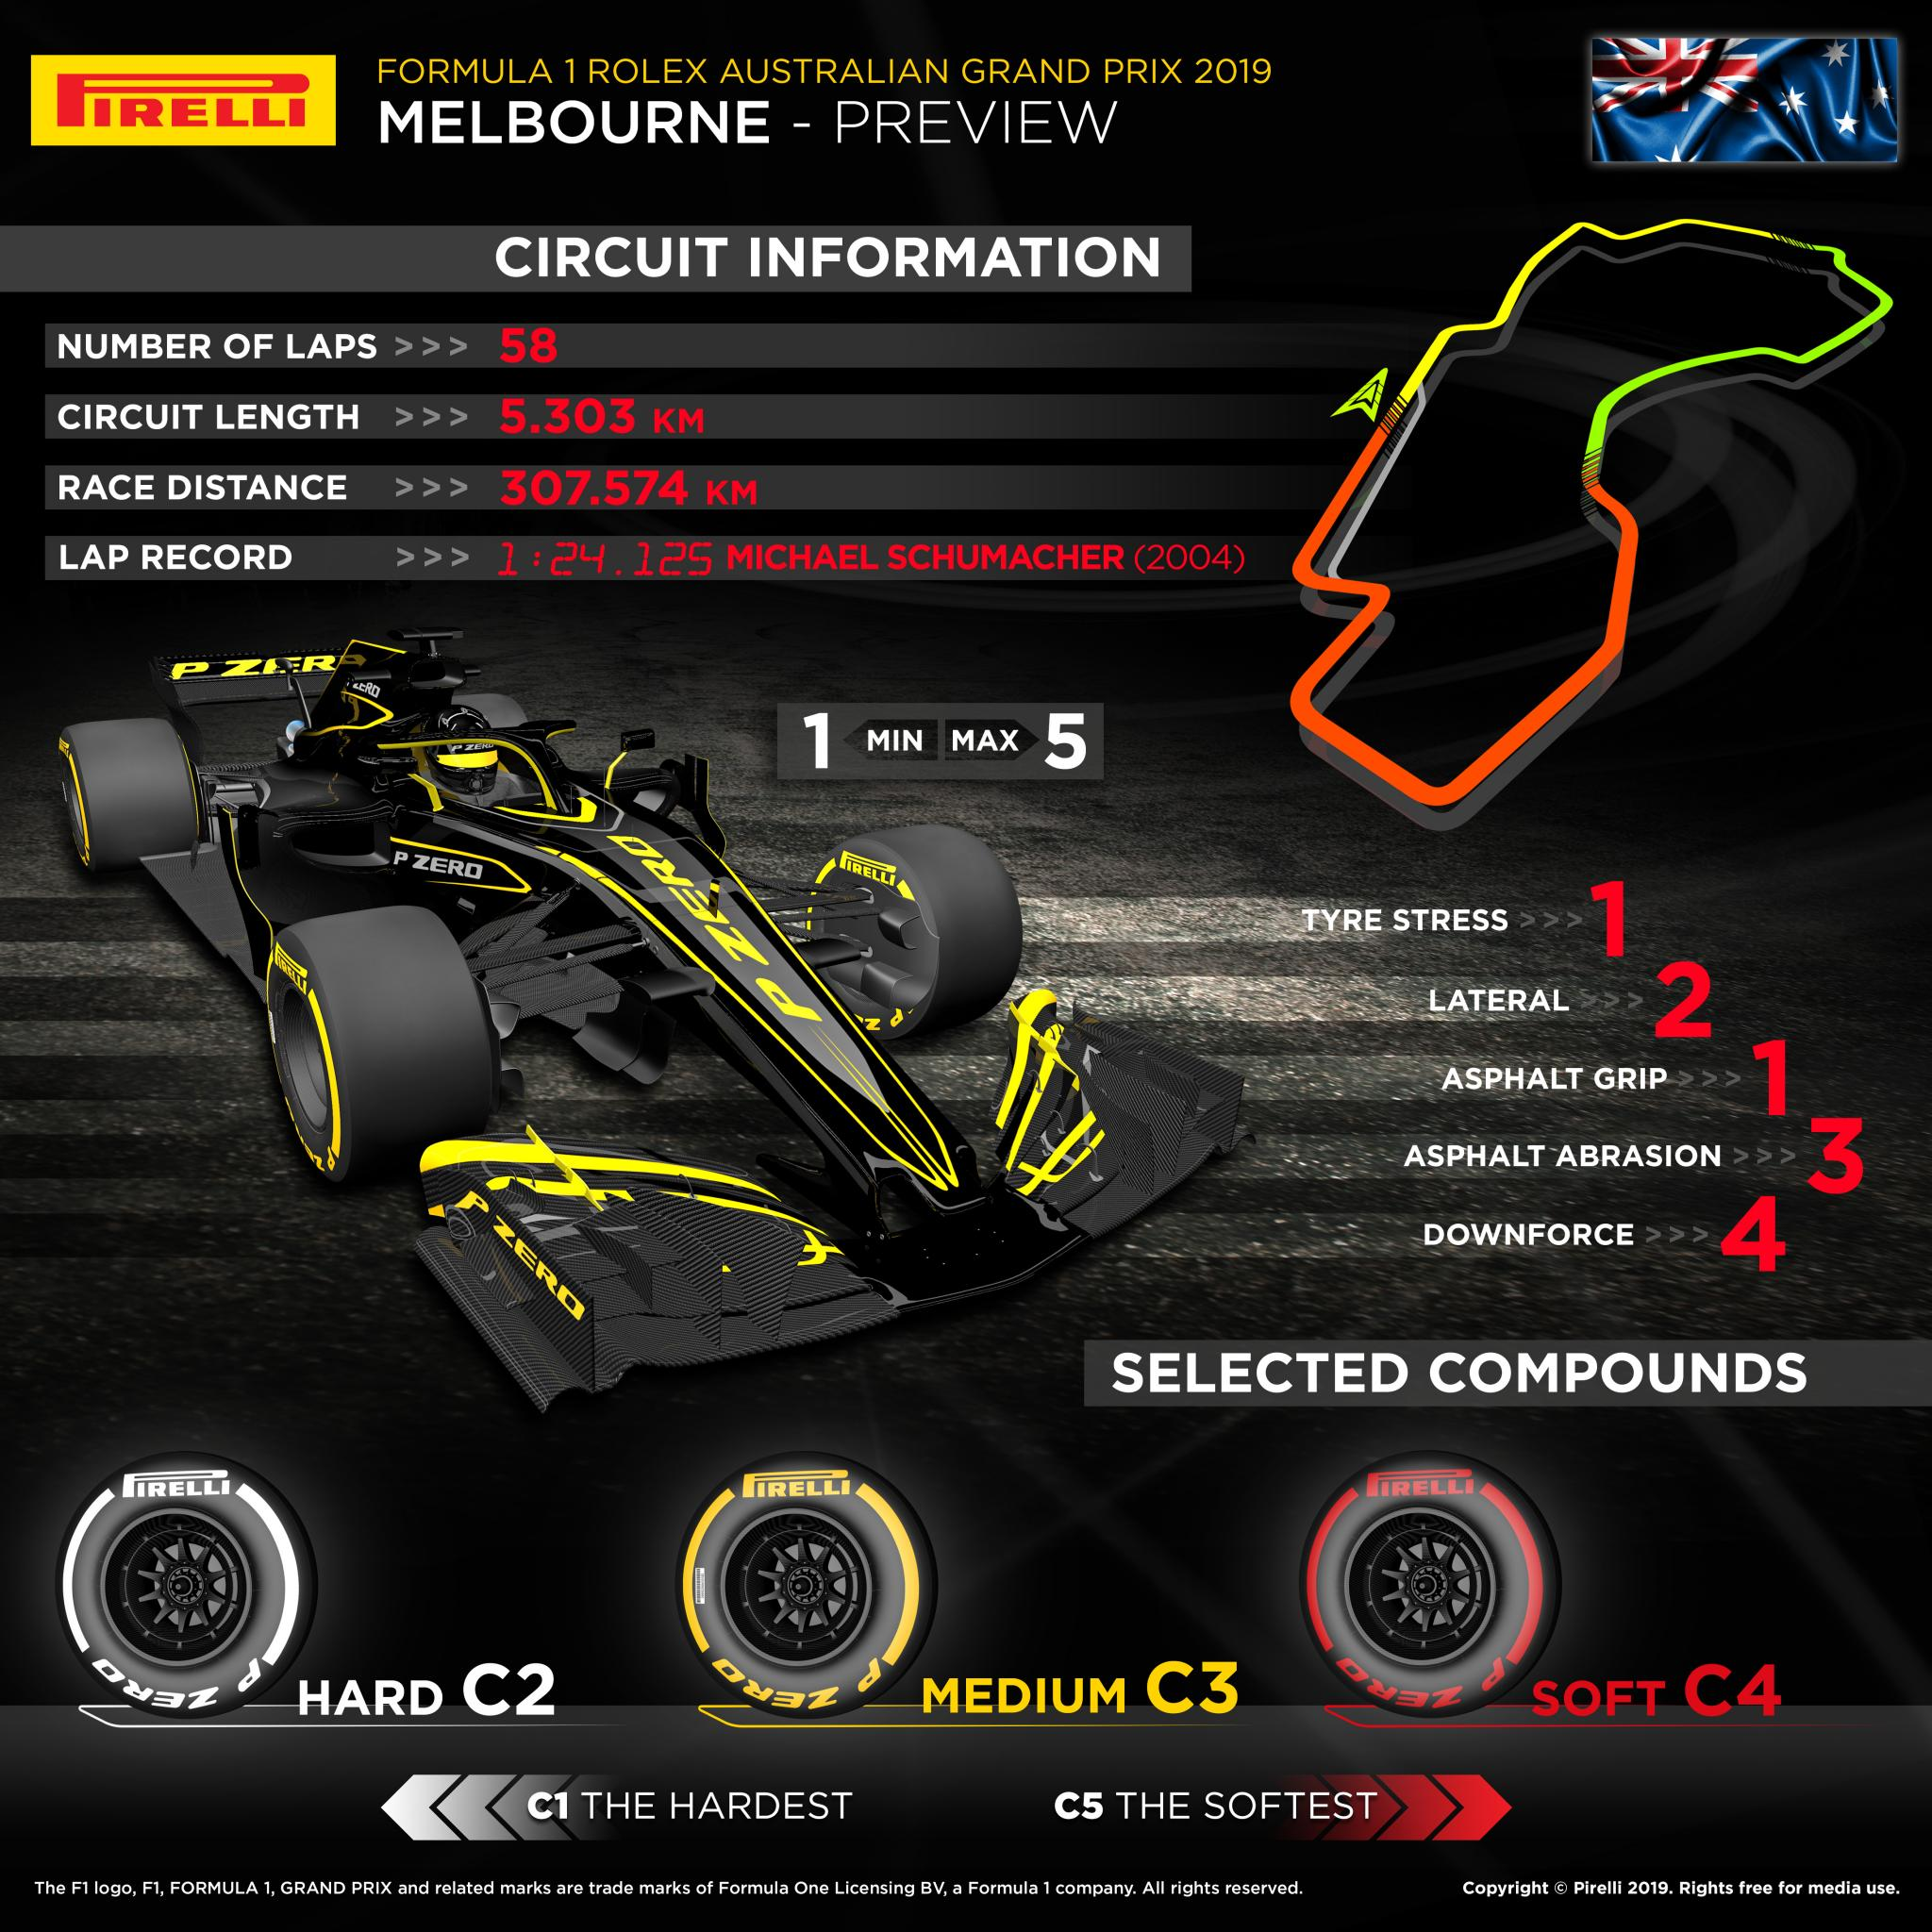 Pirelli previews F1 opener, 2019 Australian grand prix